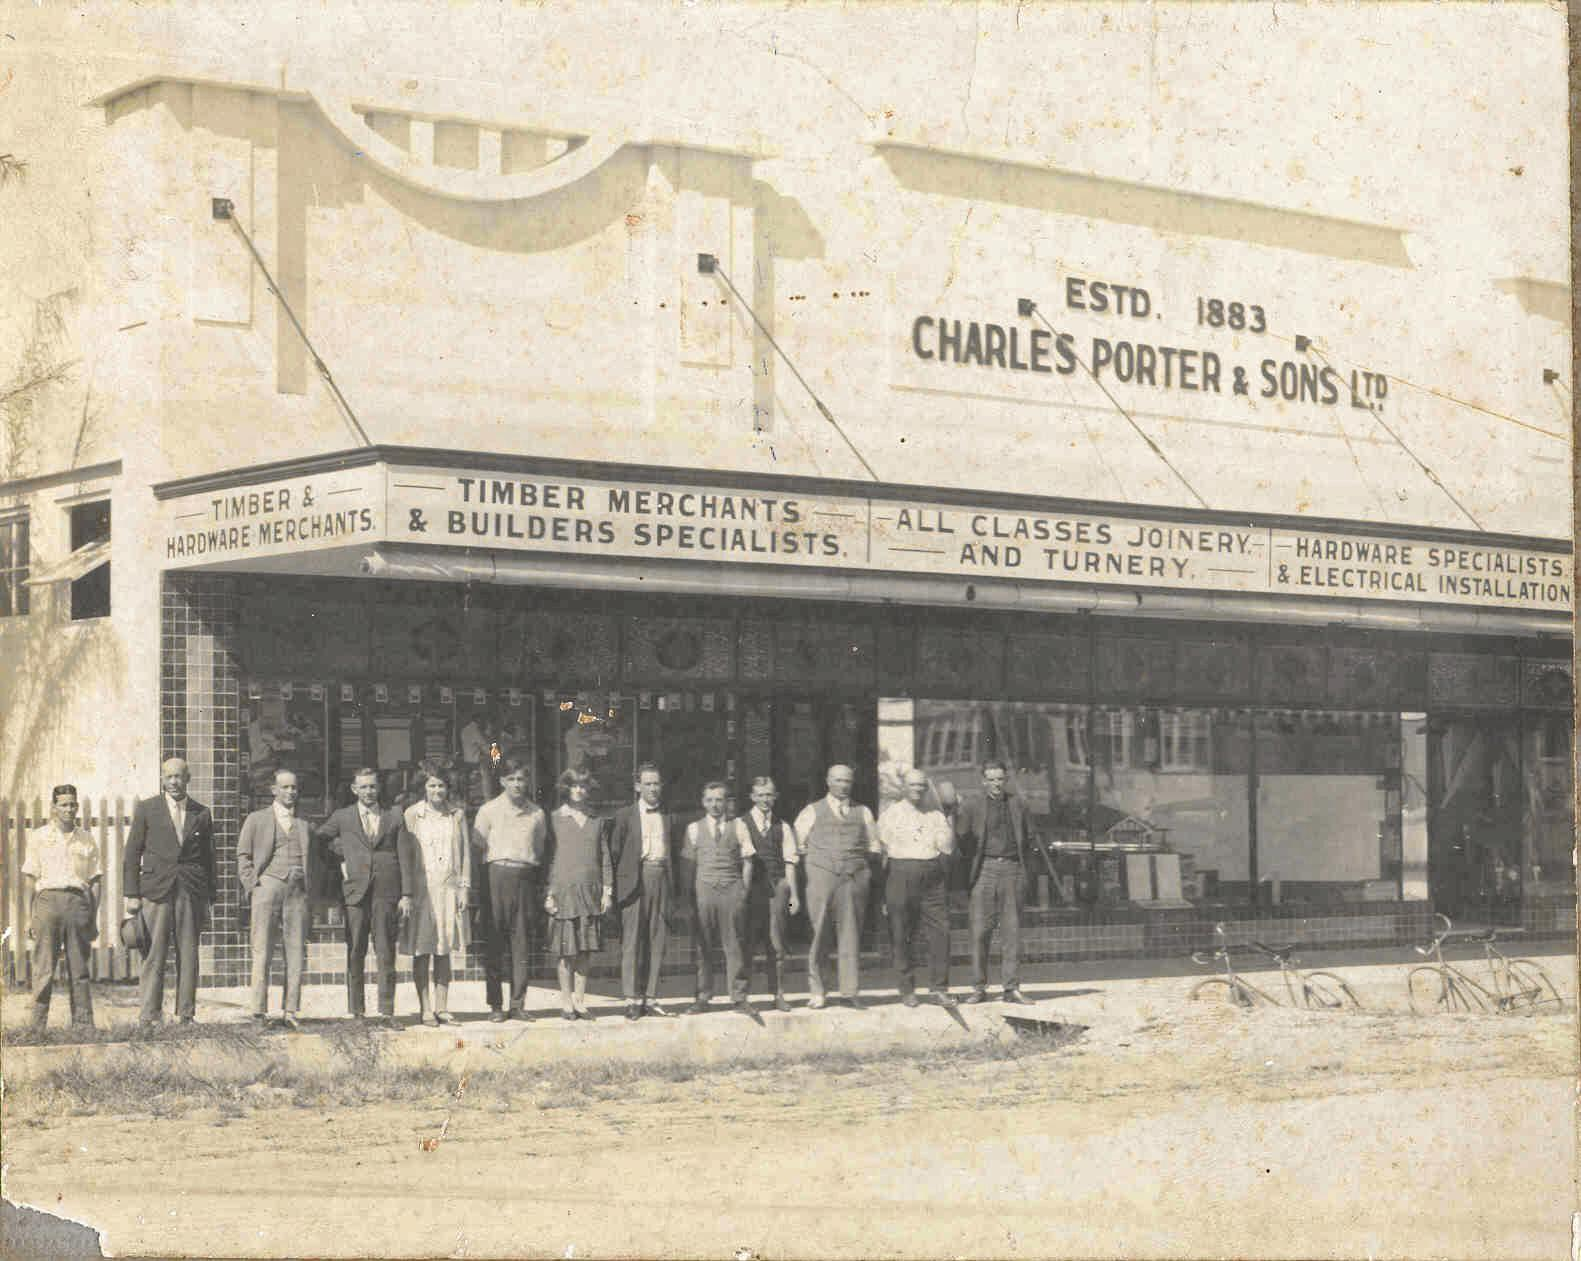 Charles Porter and Co was established in 1883.